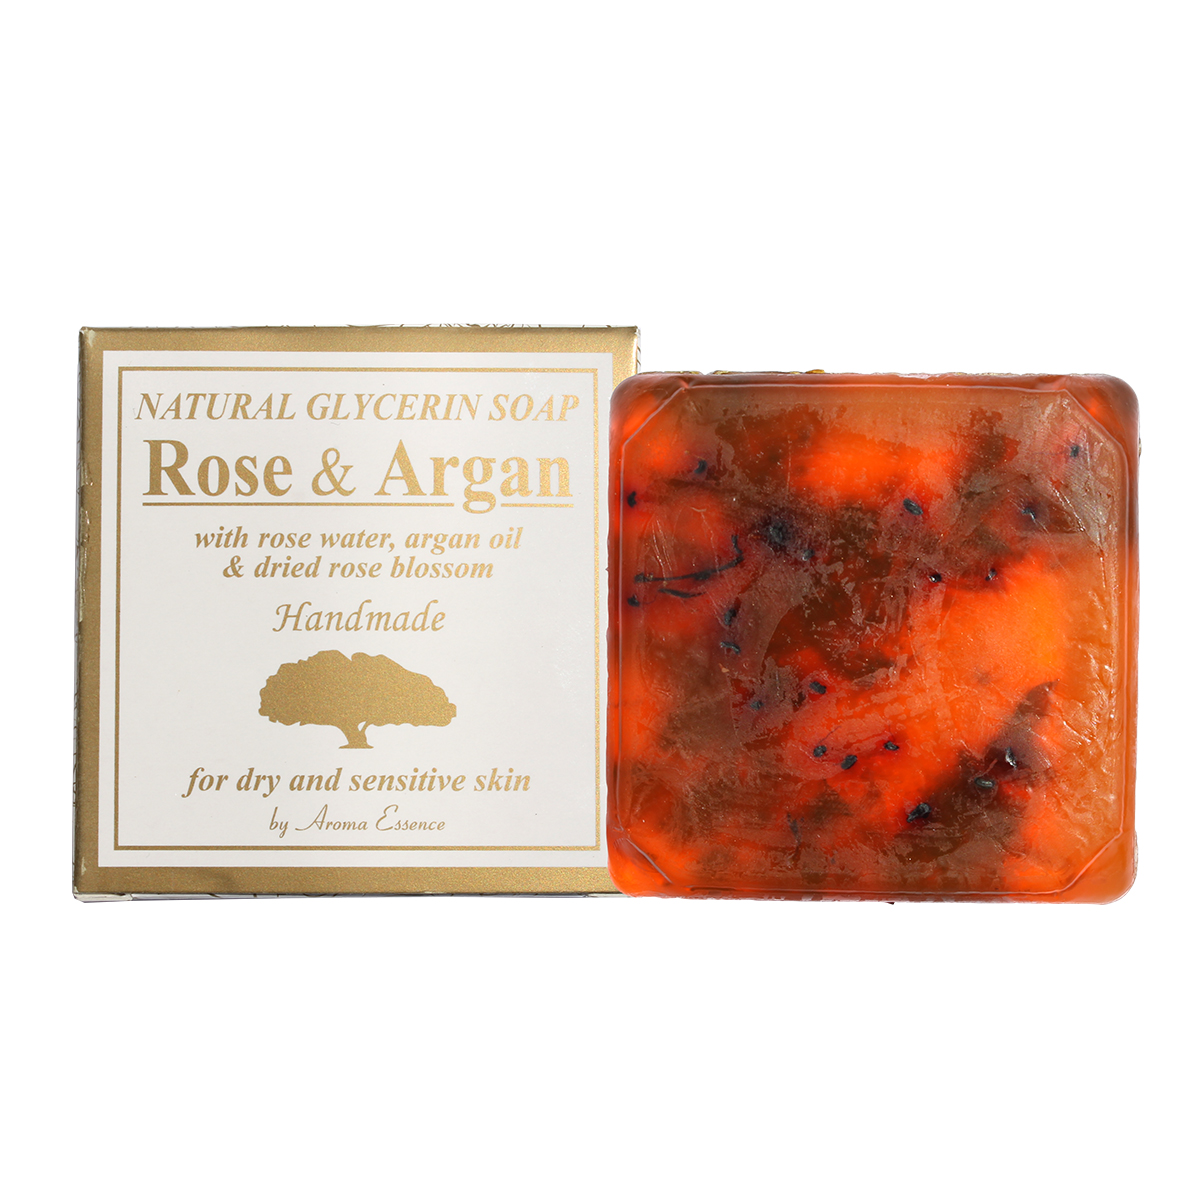 "Natural Glycerine soap ""Rose & Argan"" rose water, argan oil & dried rose blossom 60 g."